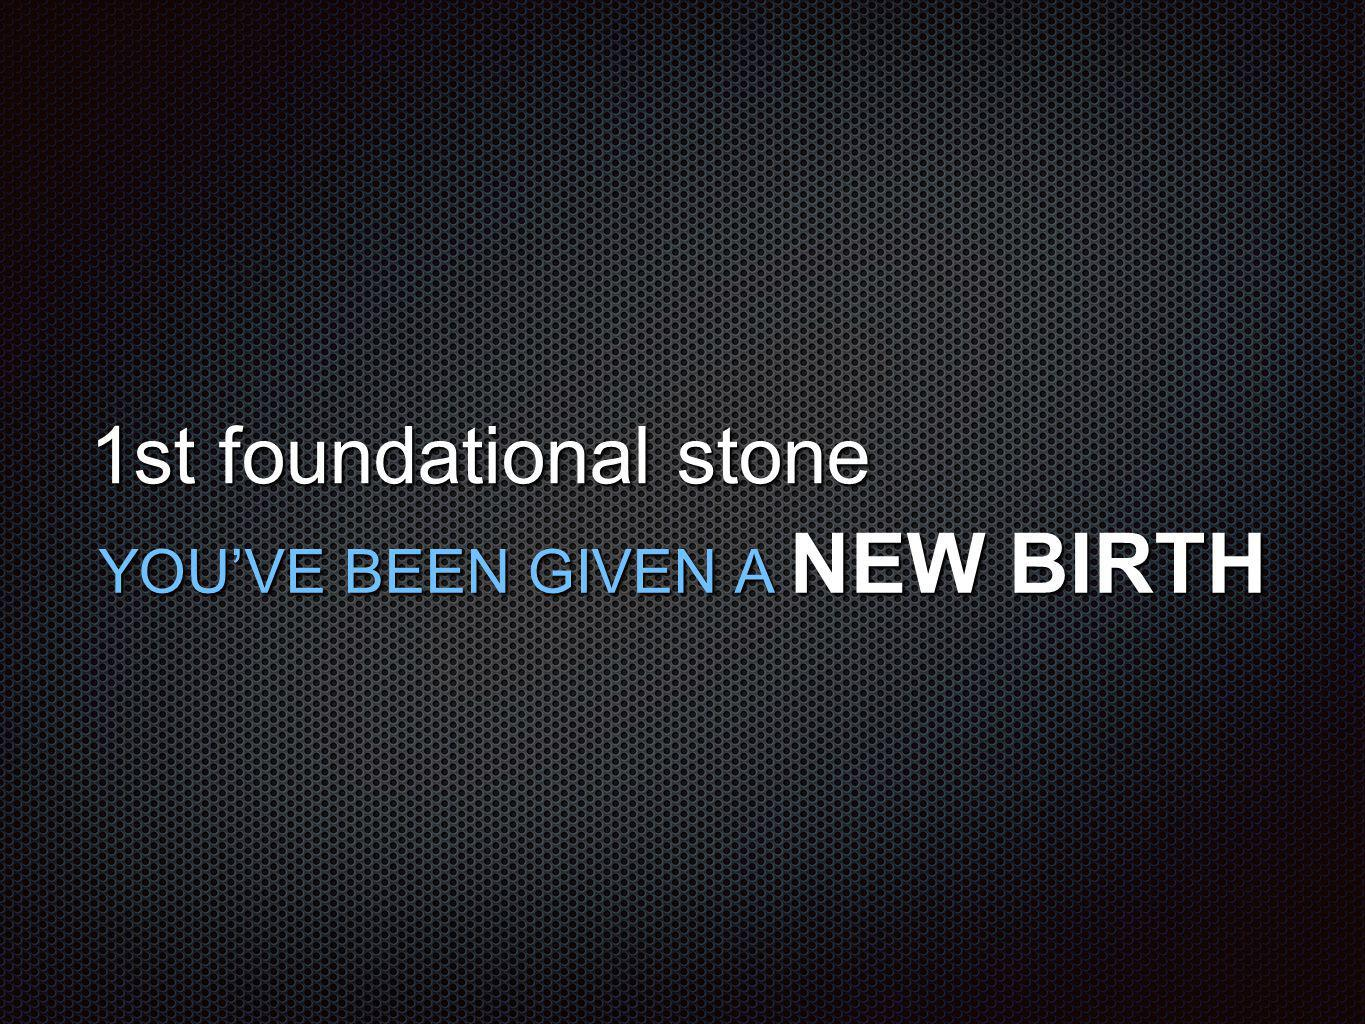 1st foundational stone YOU'VE BEEN GIVEN A NEW BIRTH